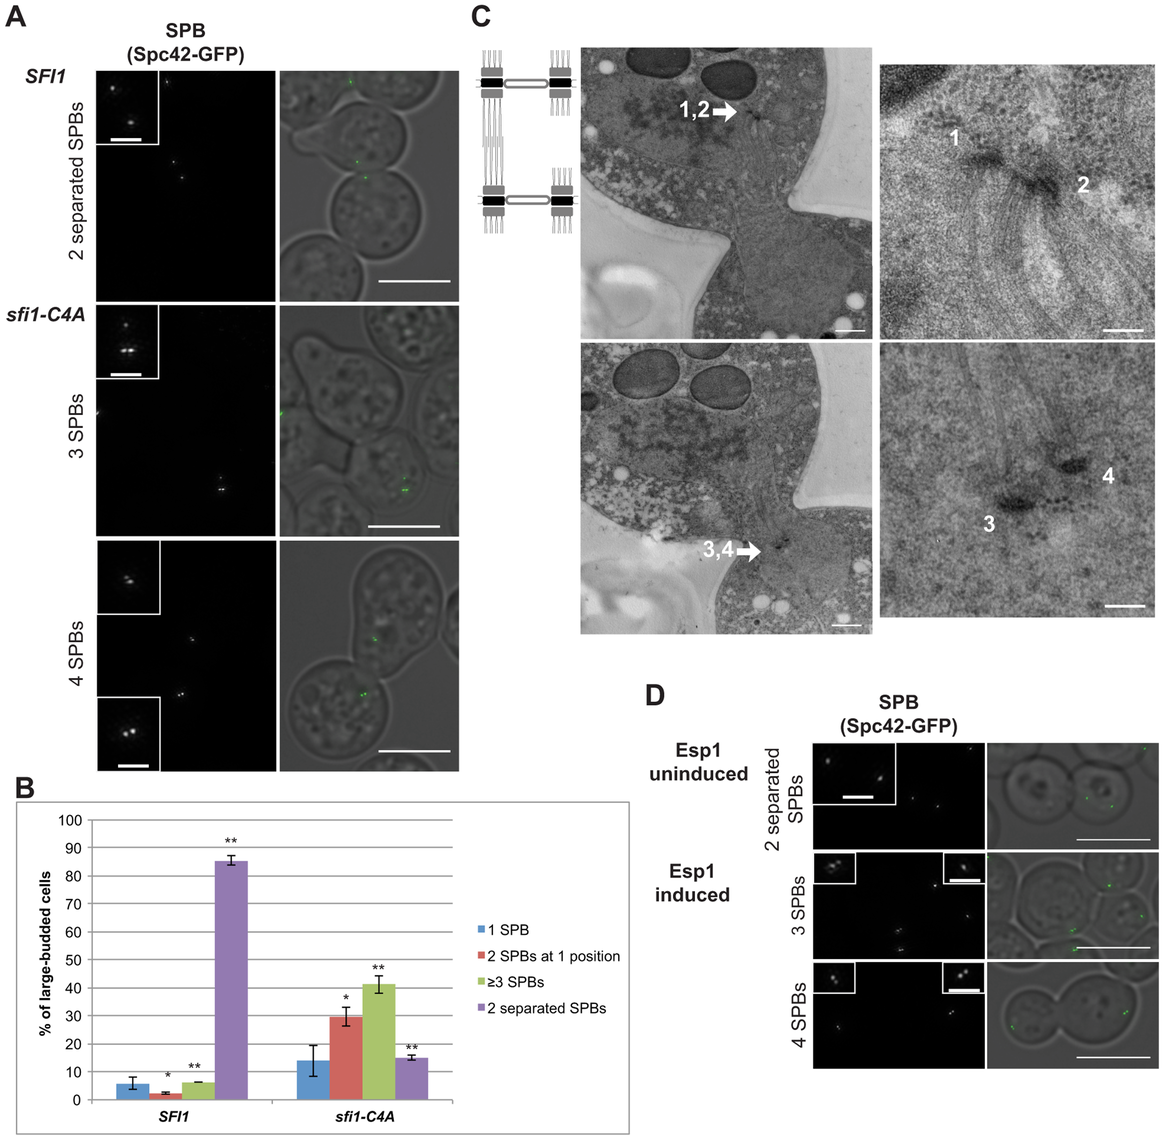 Reduplicated SPBs upon mitotic arrest are enhanced in <i>sfi1-C4A</i> and are present upon Cdc14 activation.